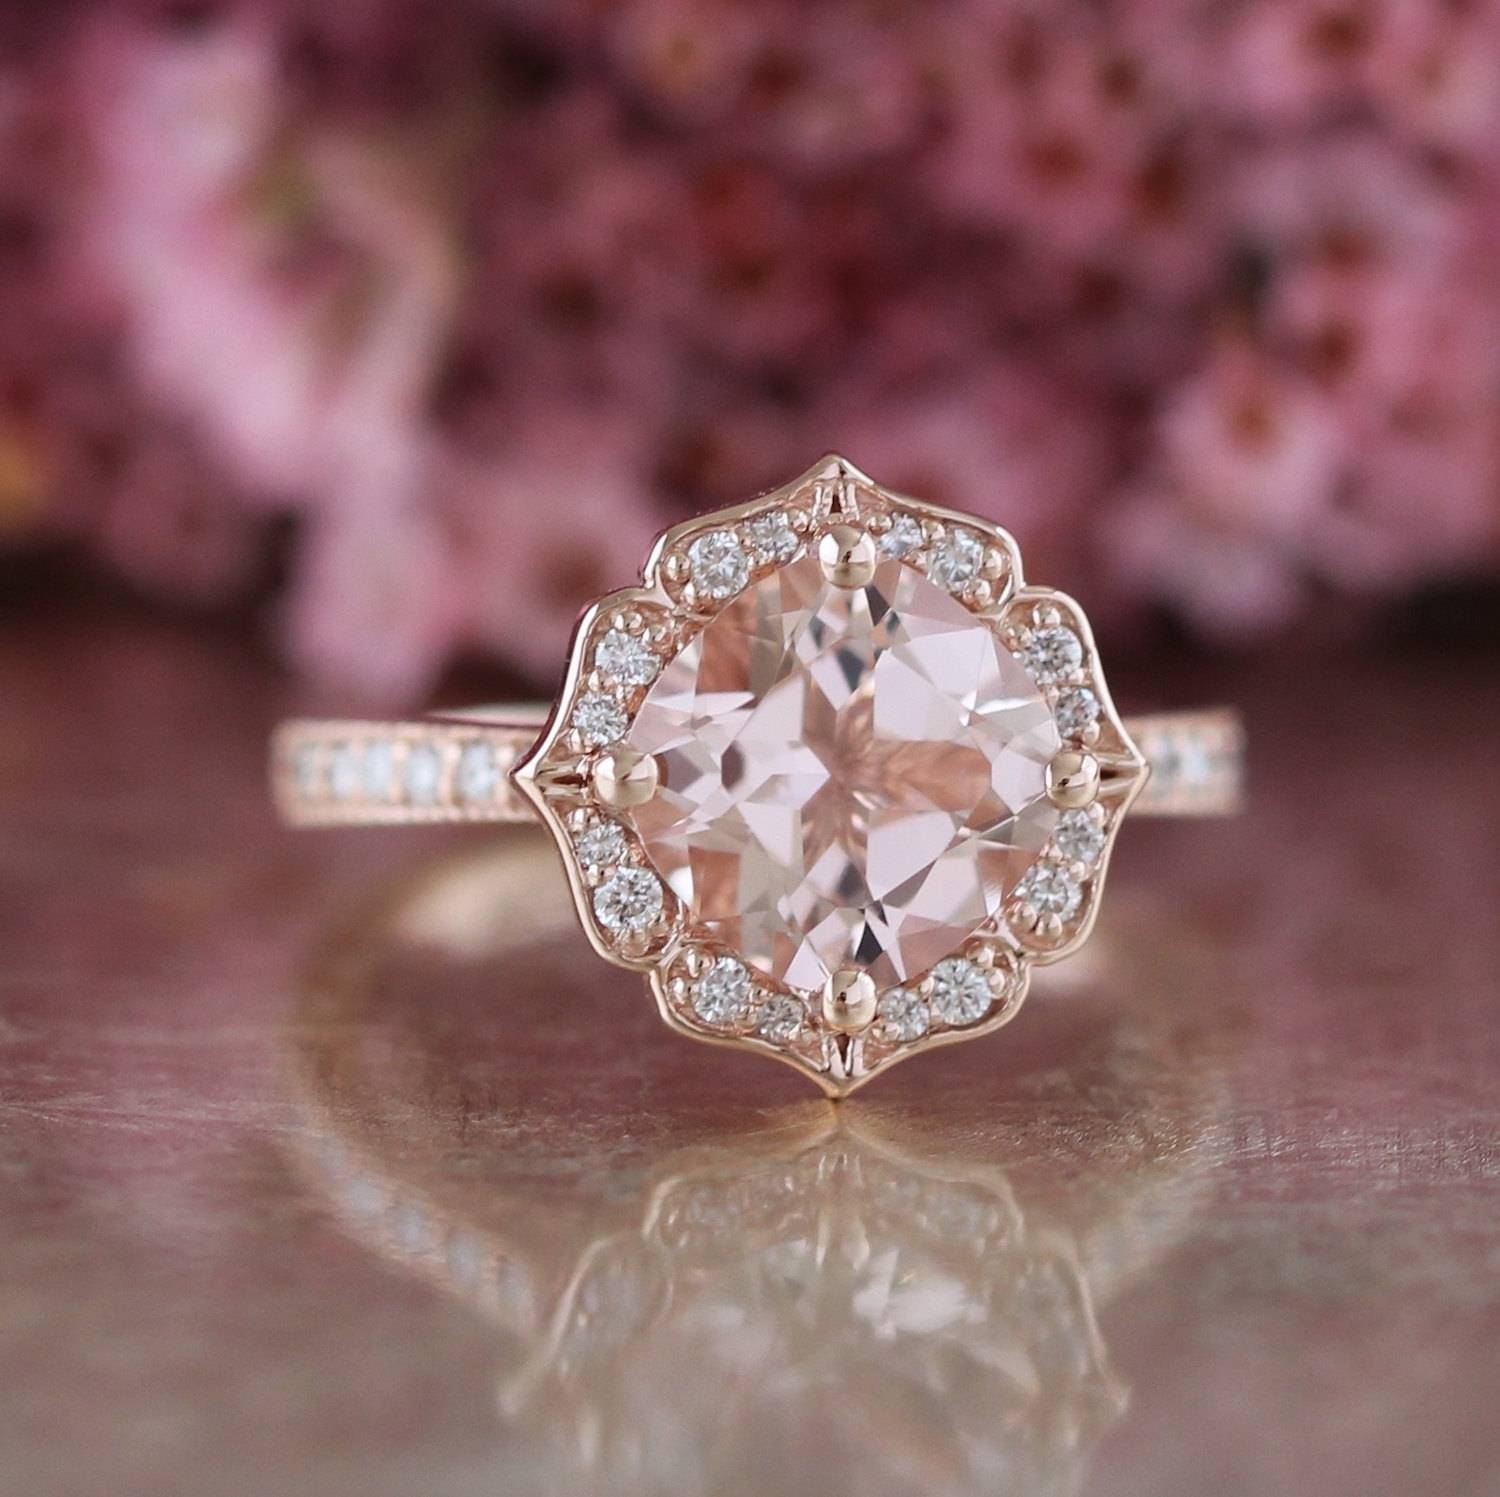 Vintage Floral Morganite Engagement Ring In 14K Rose Gold With Regard To Vintage Engagement Rings Northern Ireland (View 15 of 15)